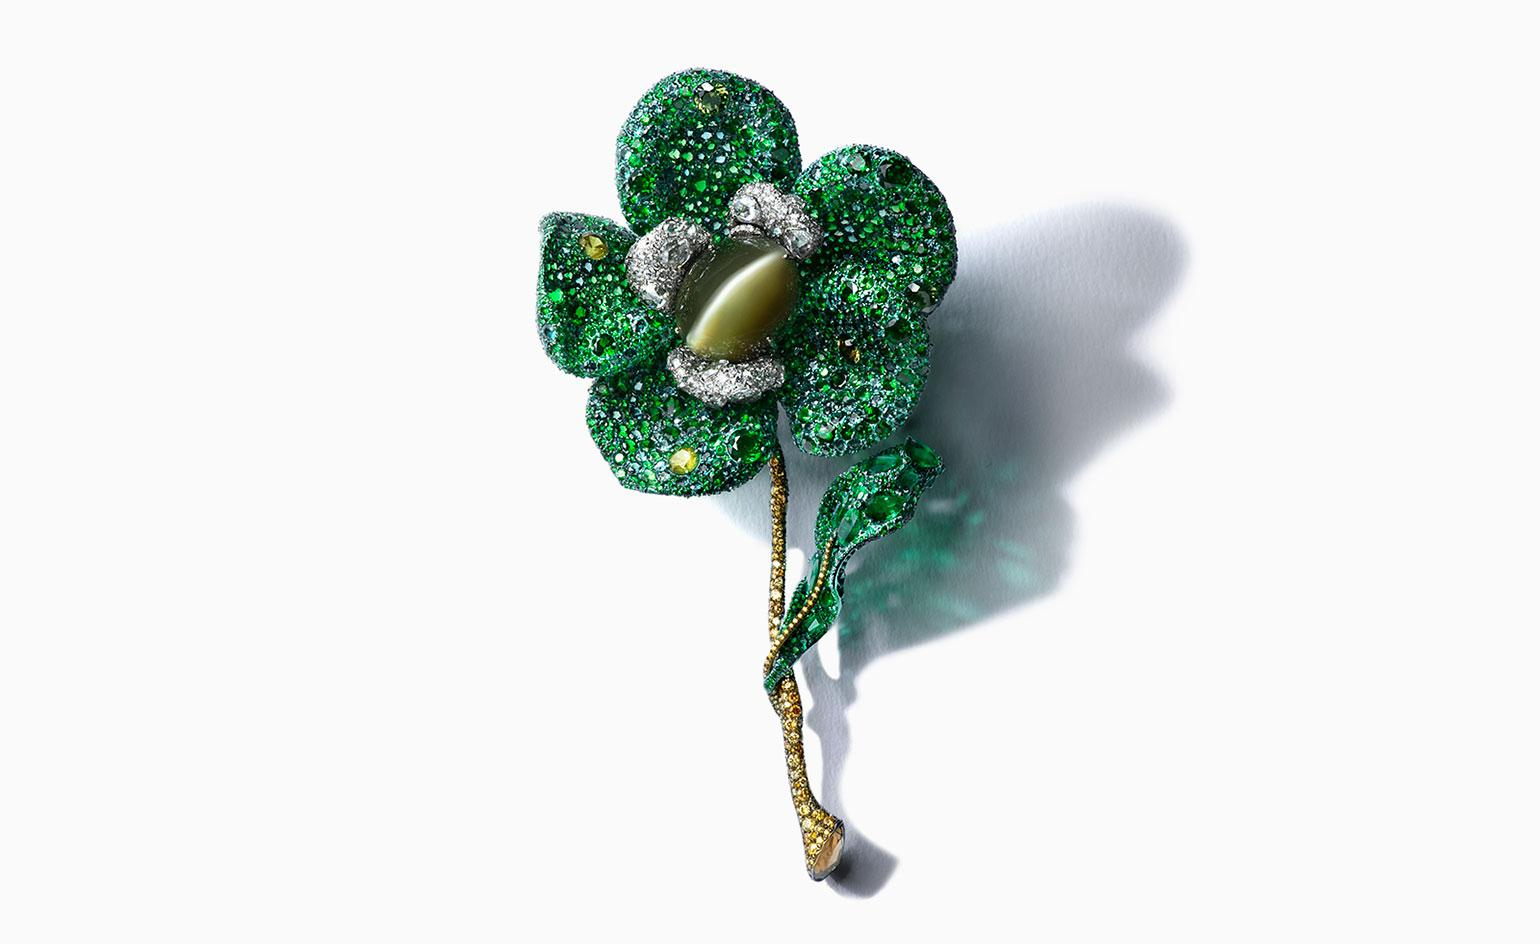 Cindy Chao's 'Greenovia Brooch